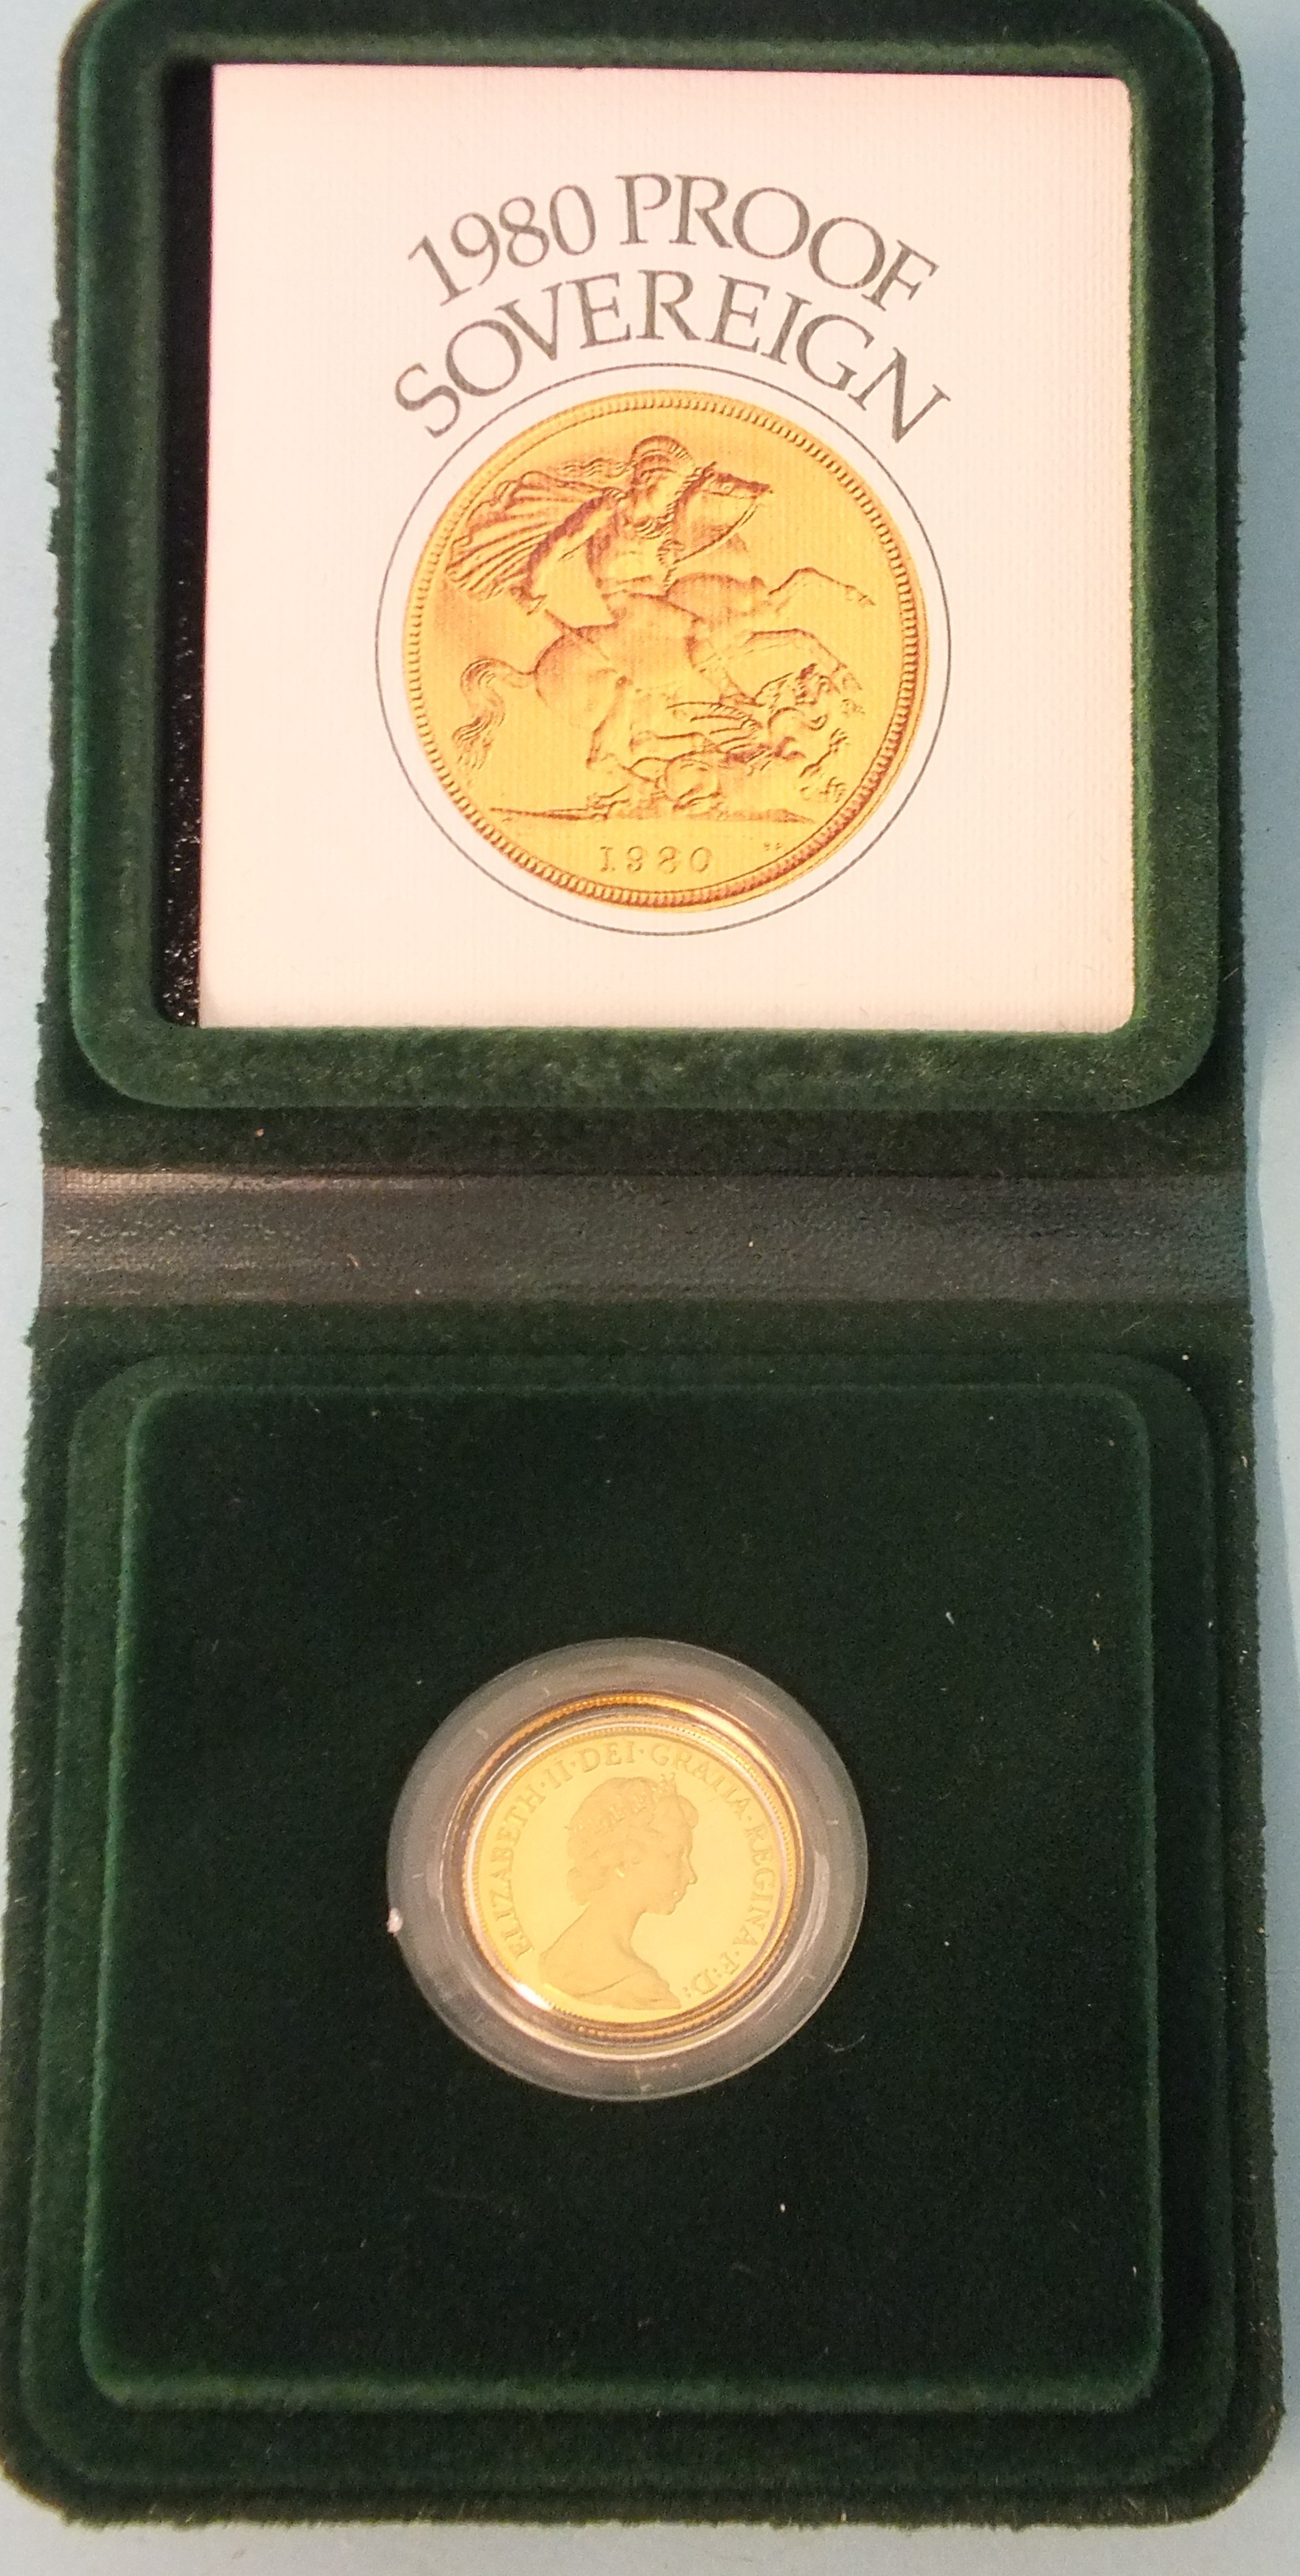 A Royal Mint cased 1980 proof sovereign in capsule, with certificate of authenticity.